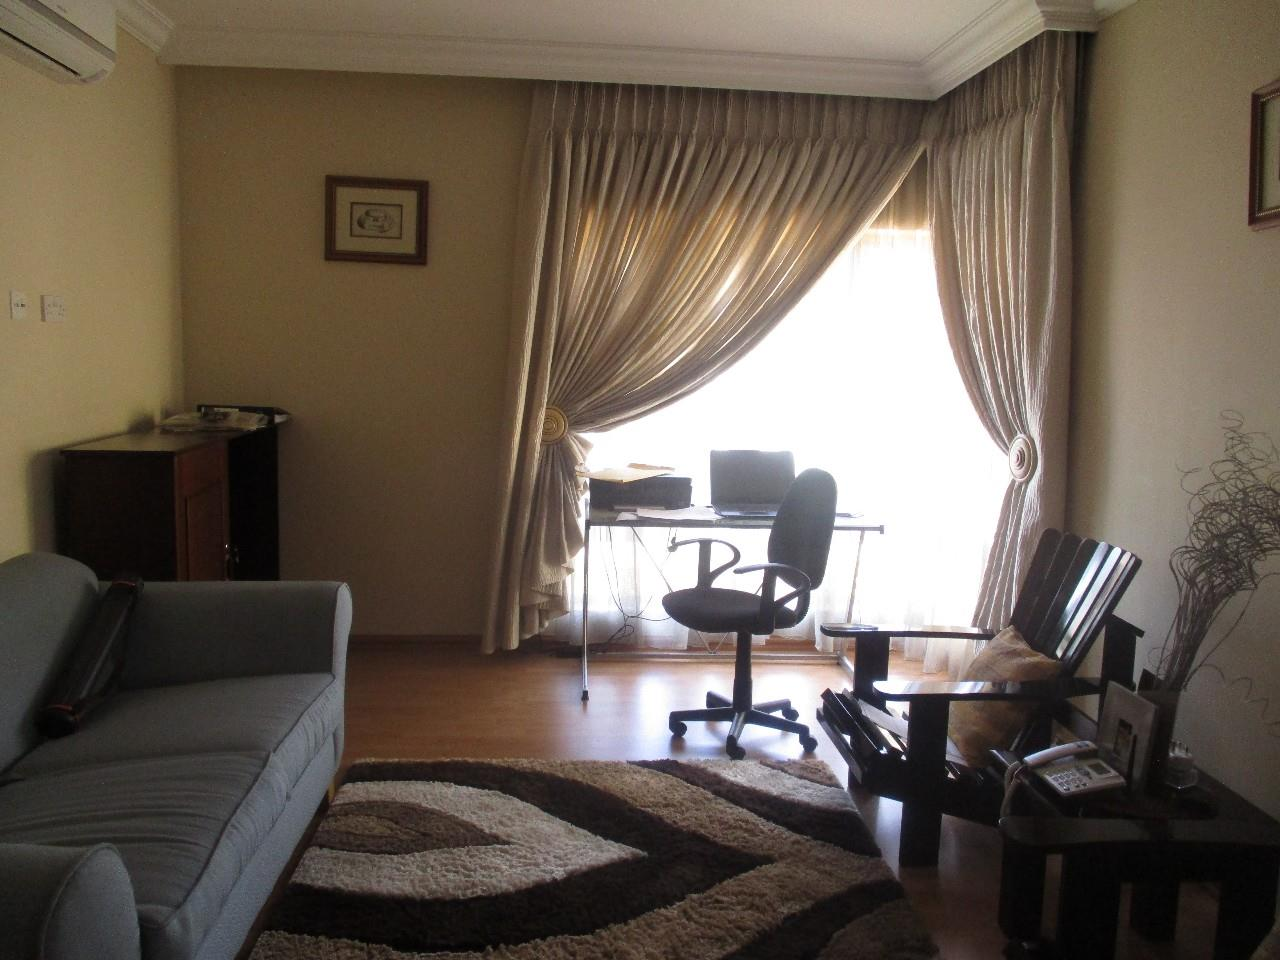 6 Bedroom House For Sale in Phakalane Golf Estate